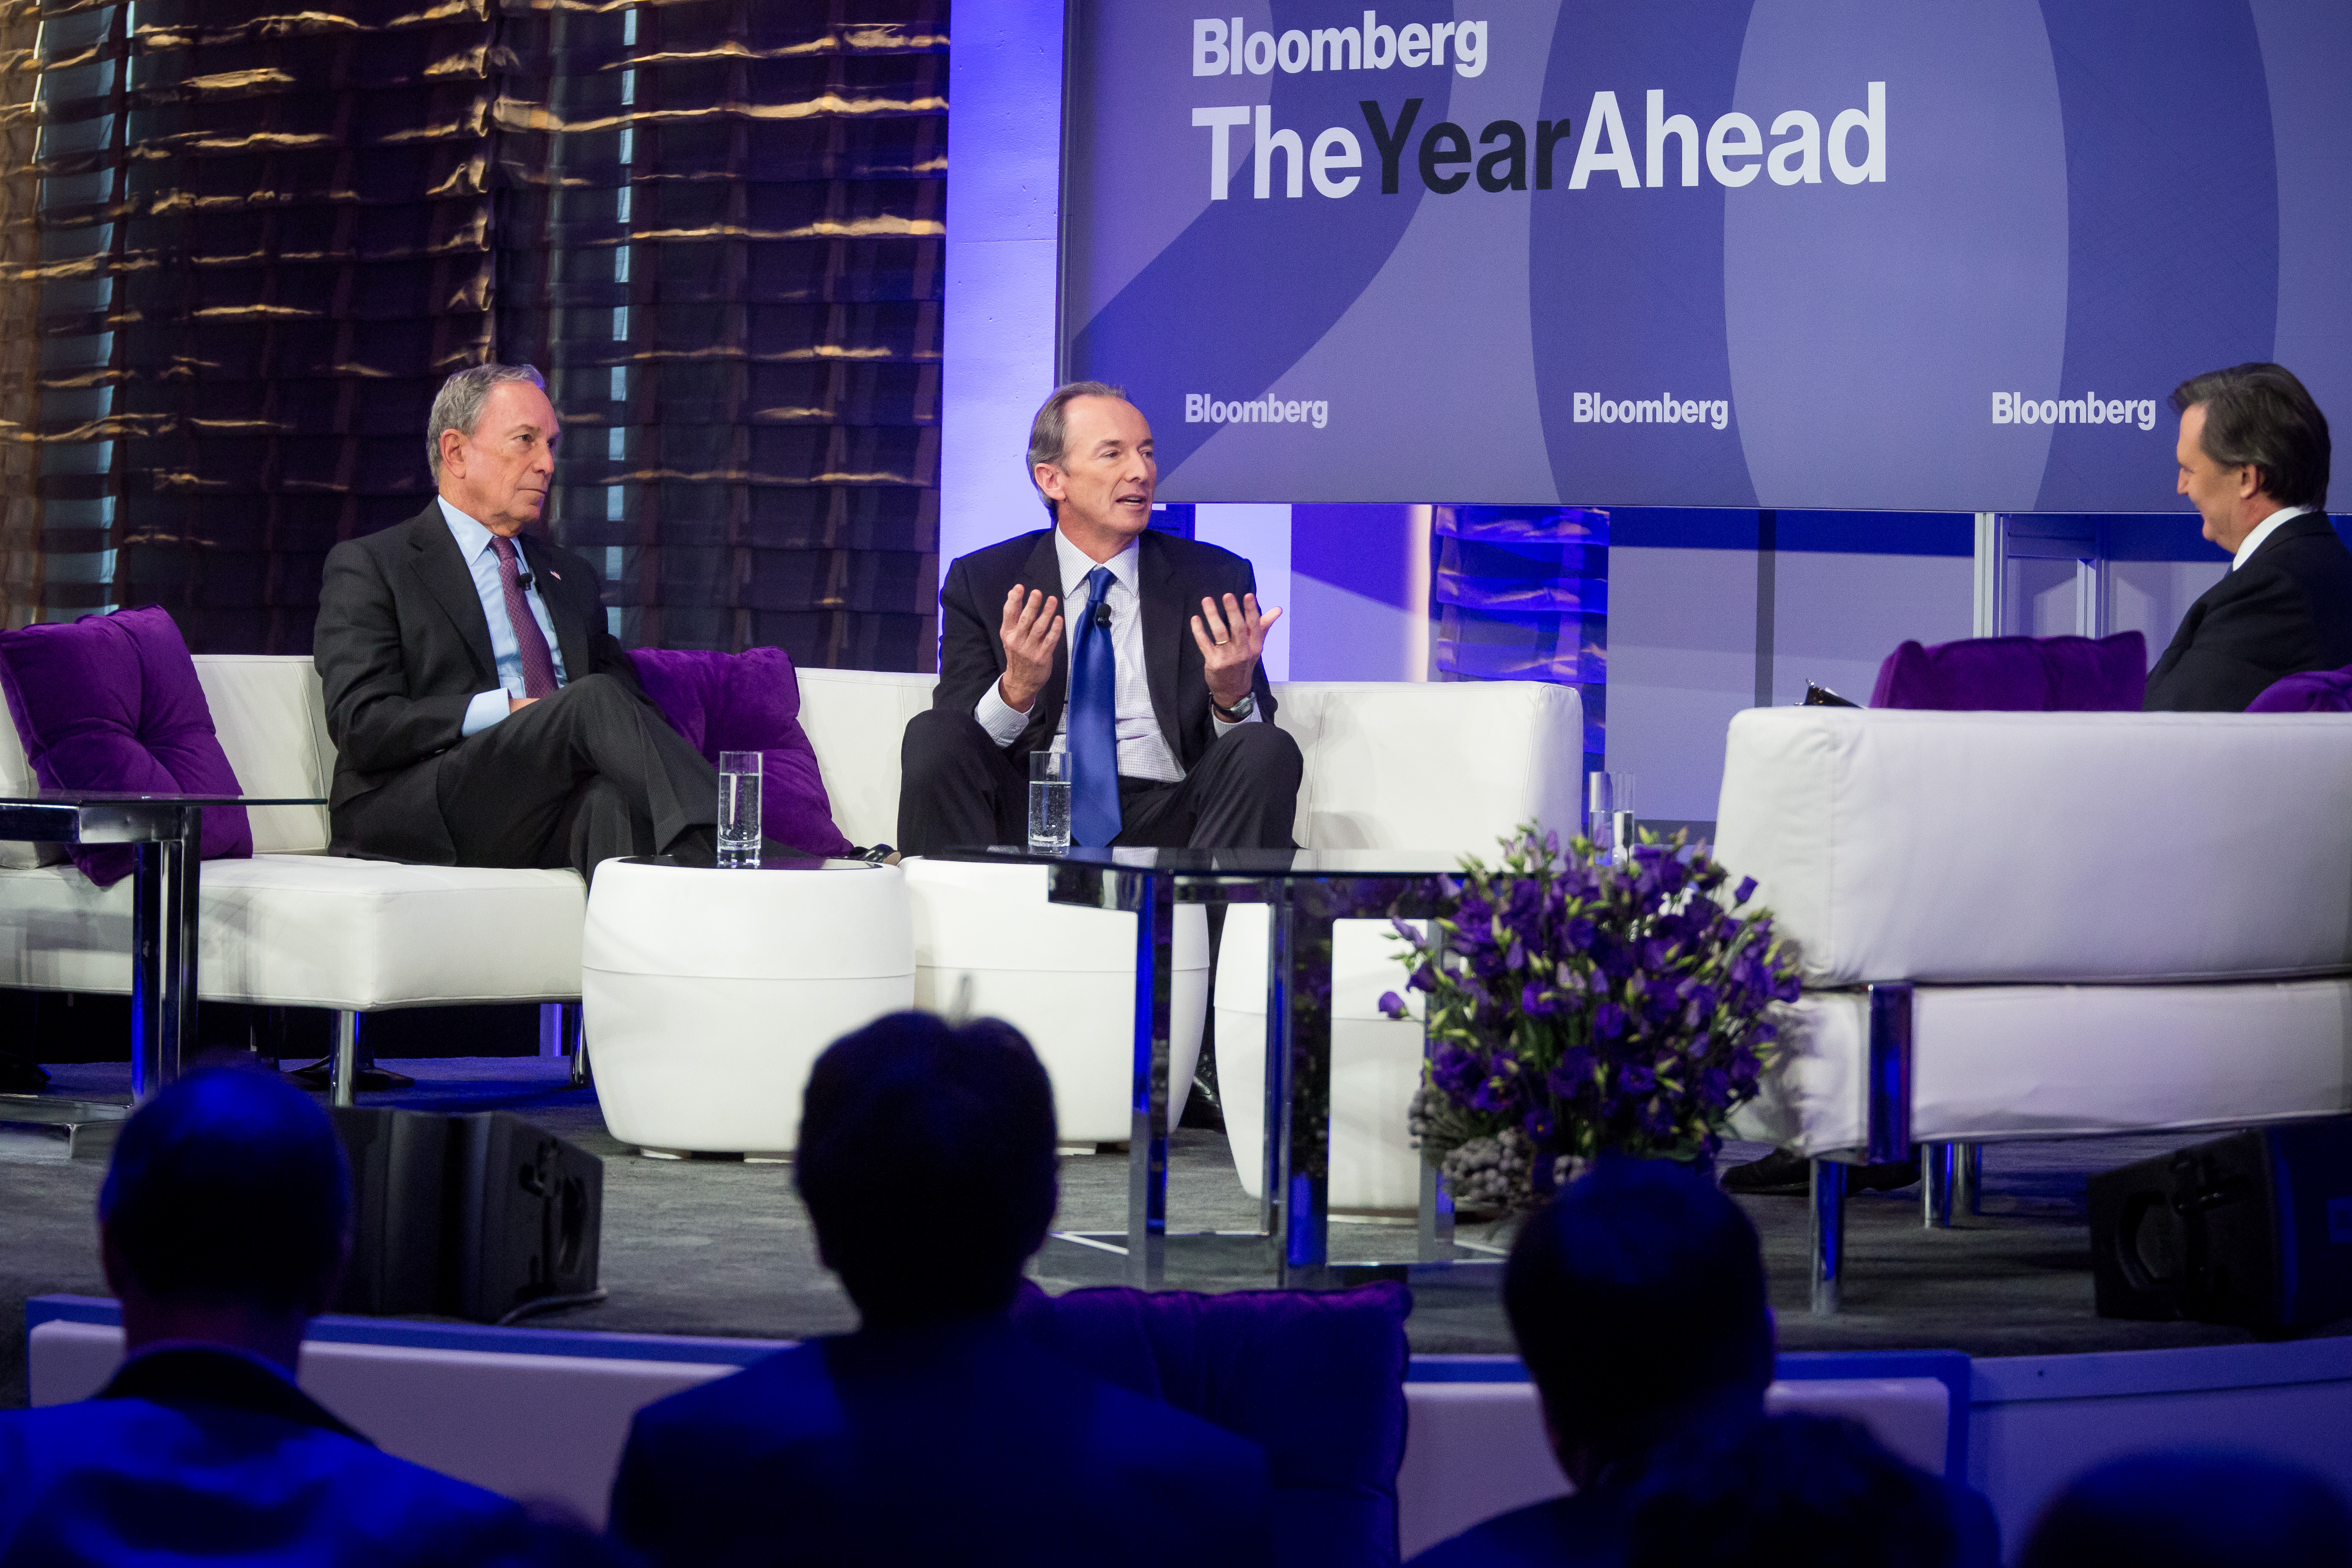 Key Speakers At The Bloomberg Year Ahead Summit